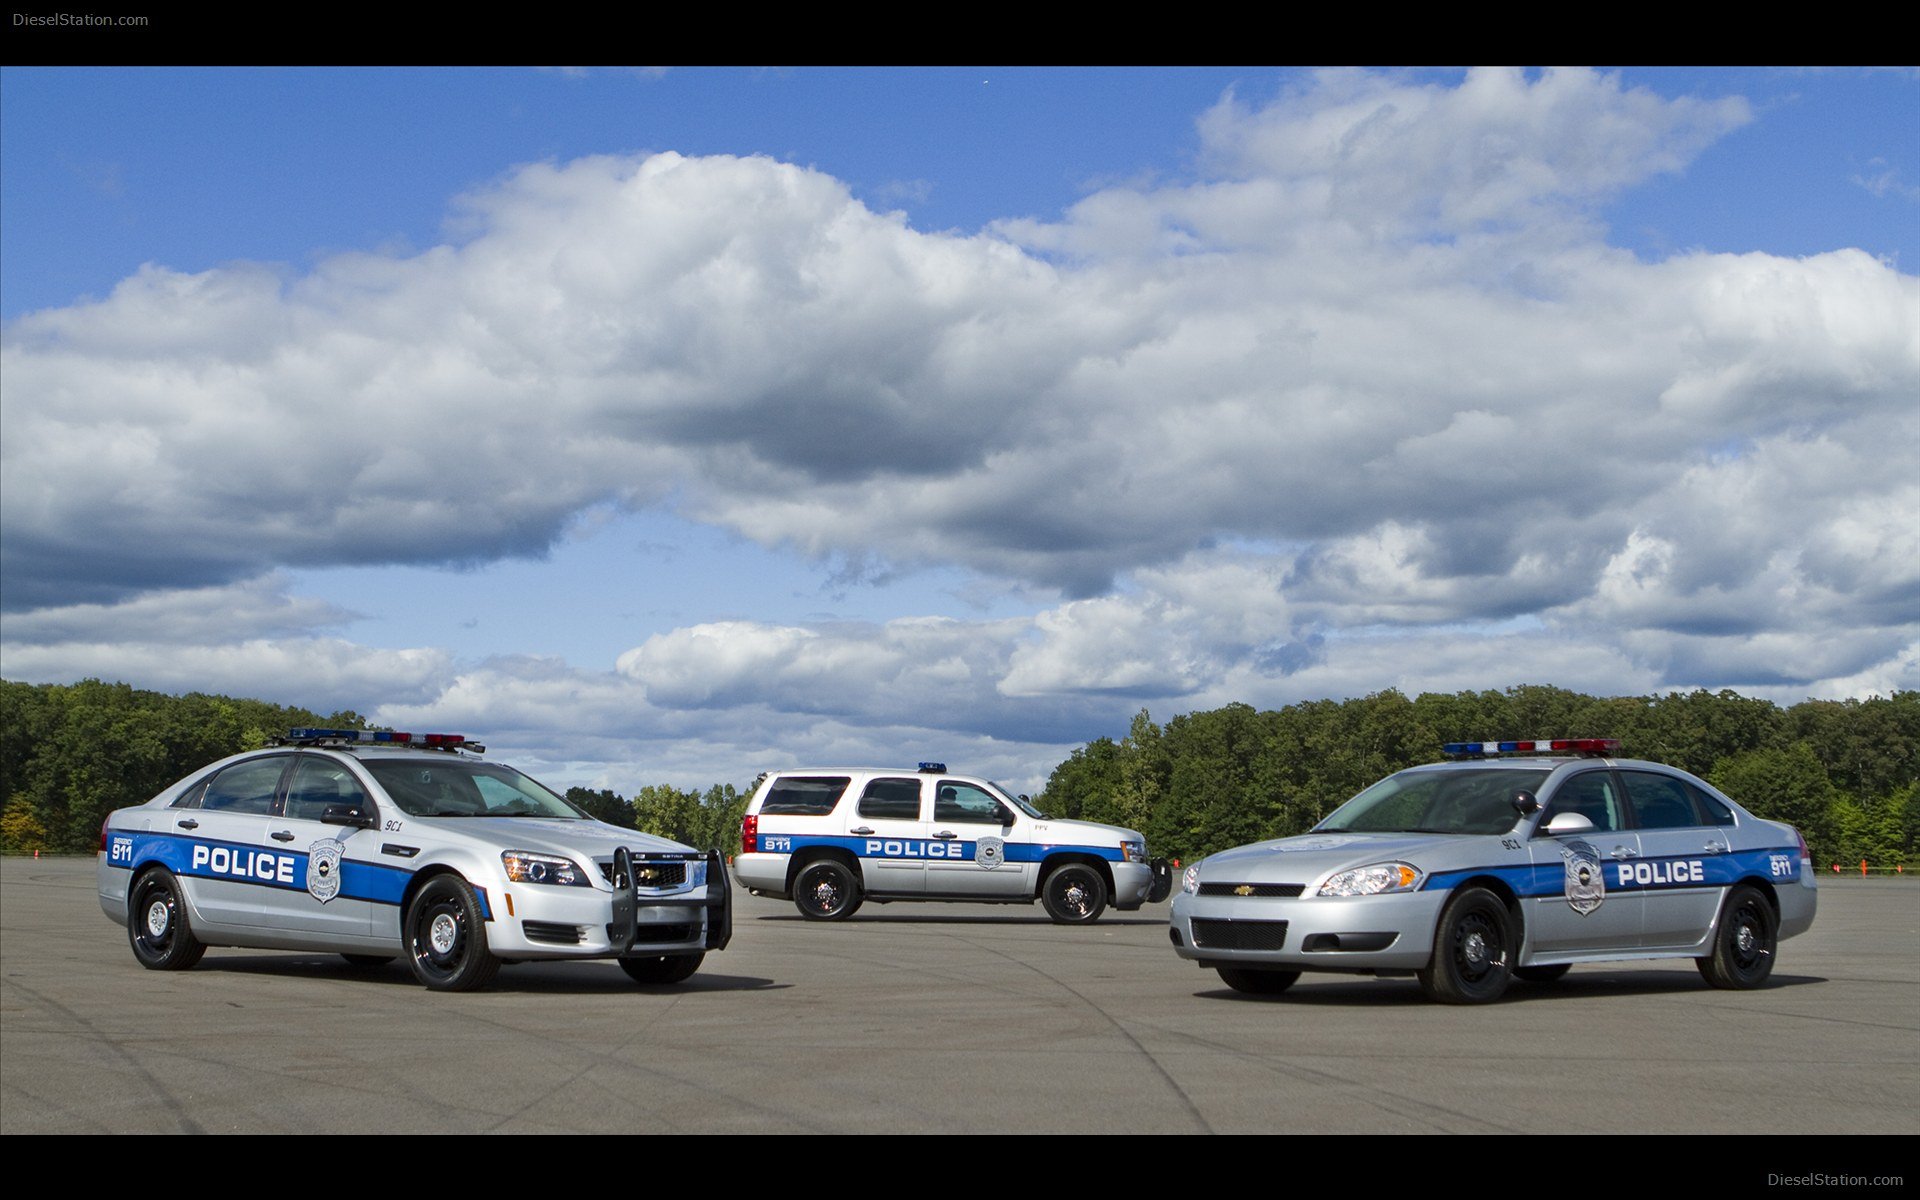 Chevrolet Tahoe PPV 2013 - Car Picture at Dieselstation